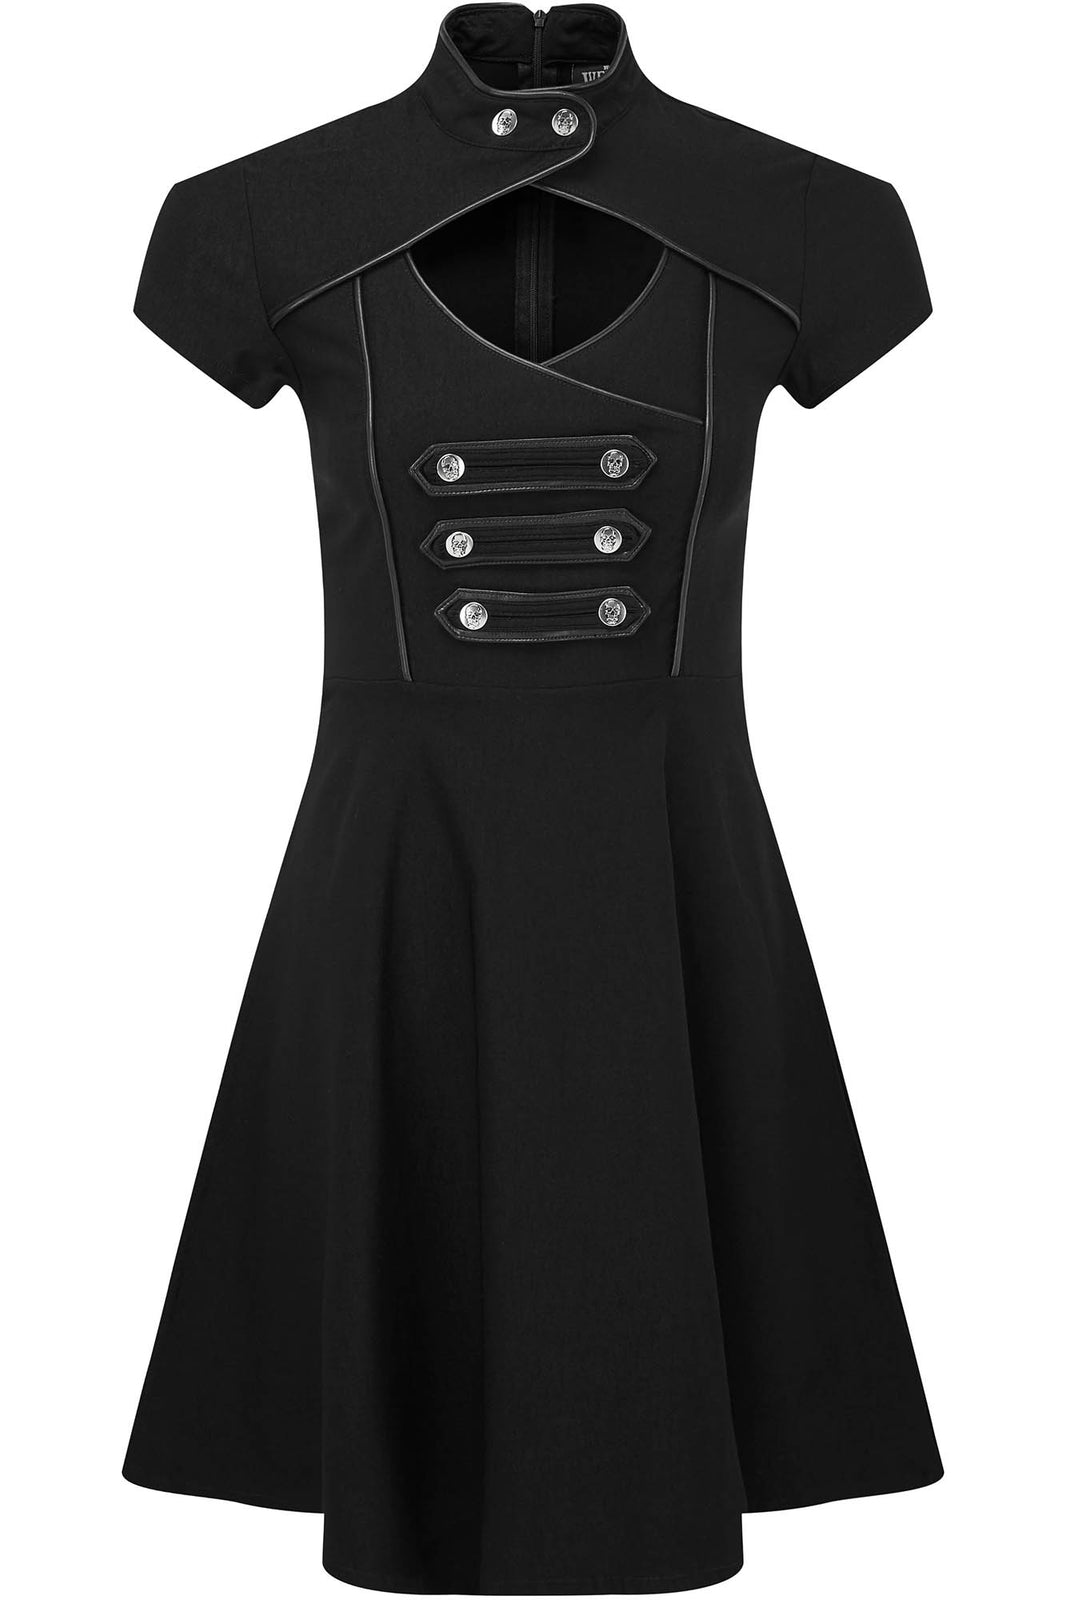 Regiment Skater Dress